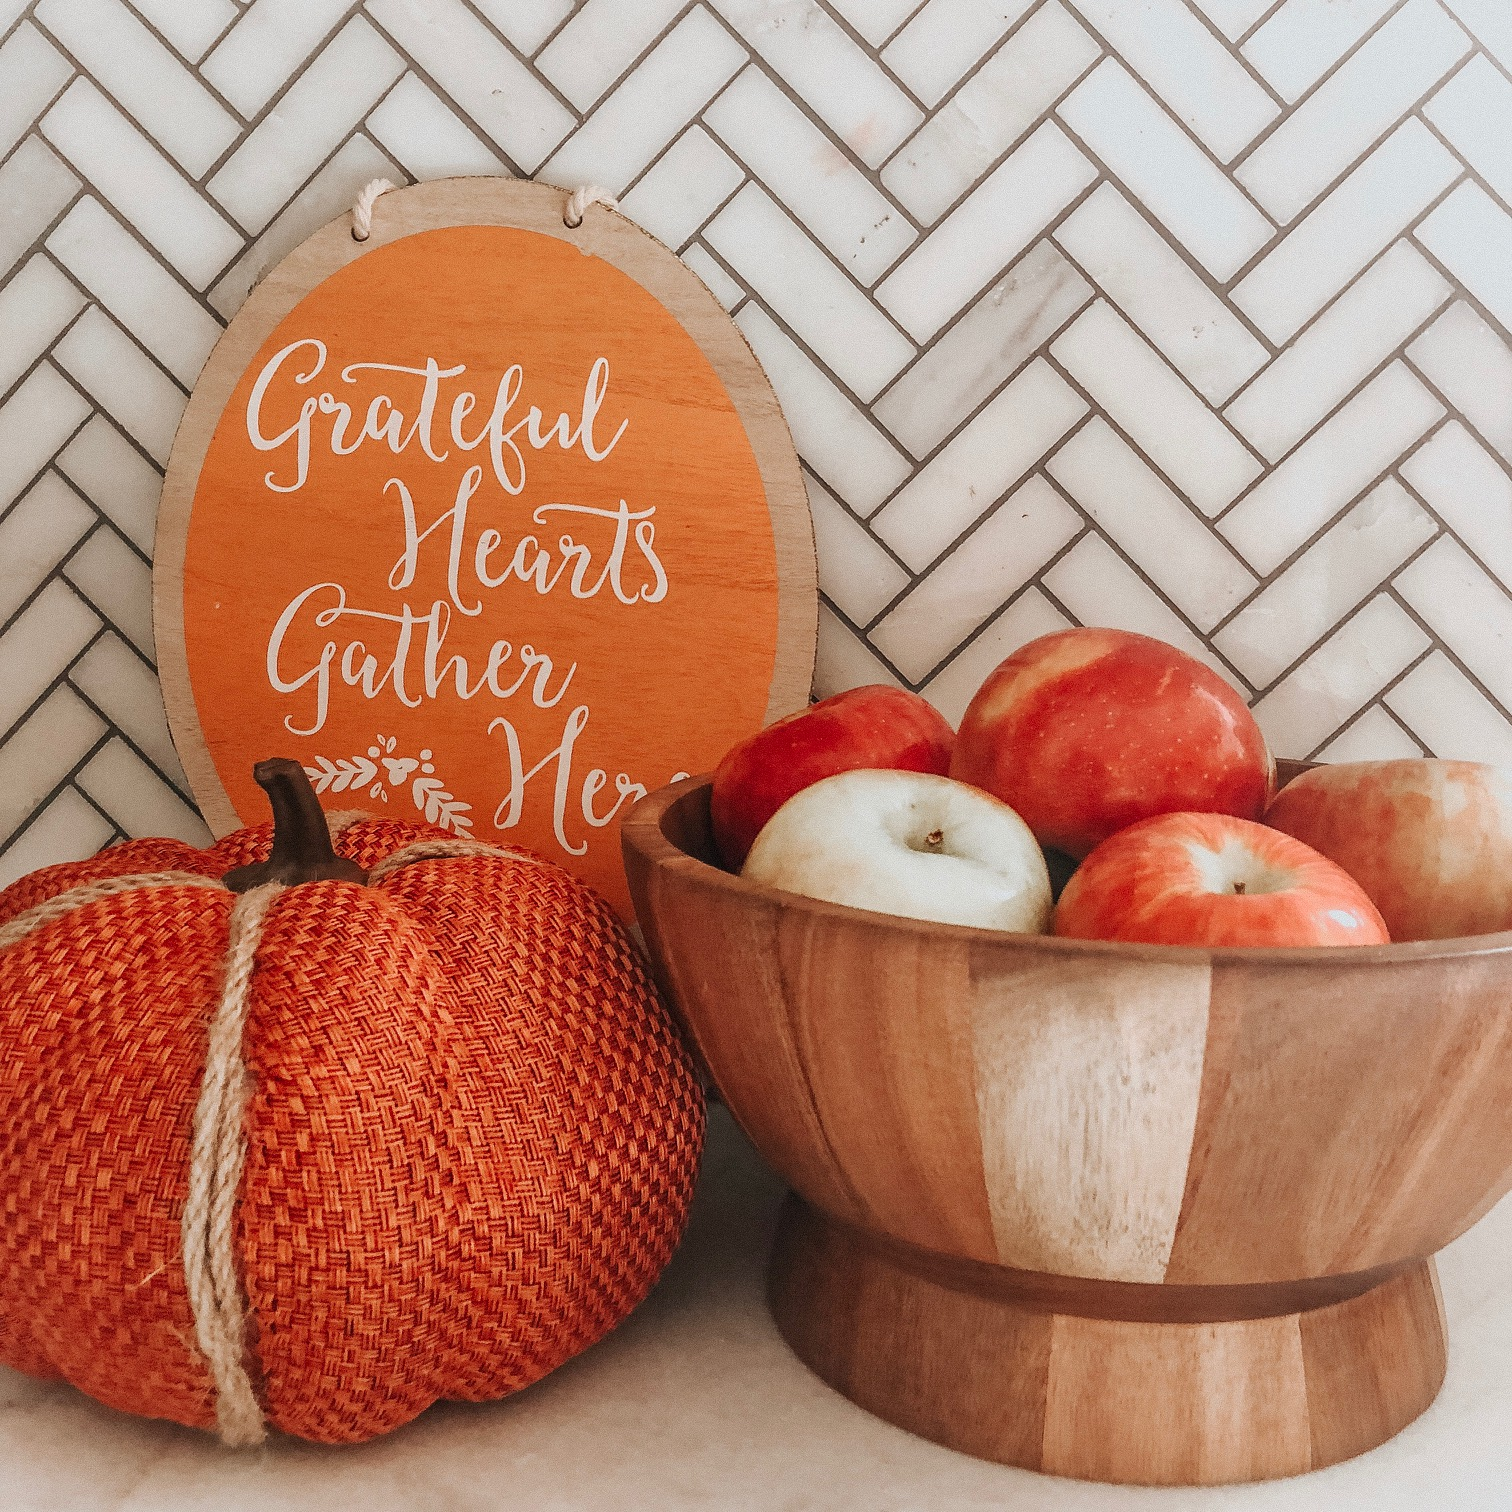 Daily Splendor Life and Style Blog | Friday Splendors 10/19 #fallstyle #homedecor #warmandcozy #autumn